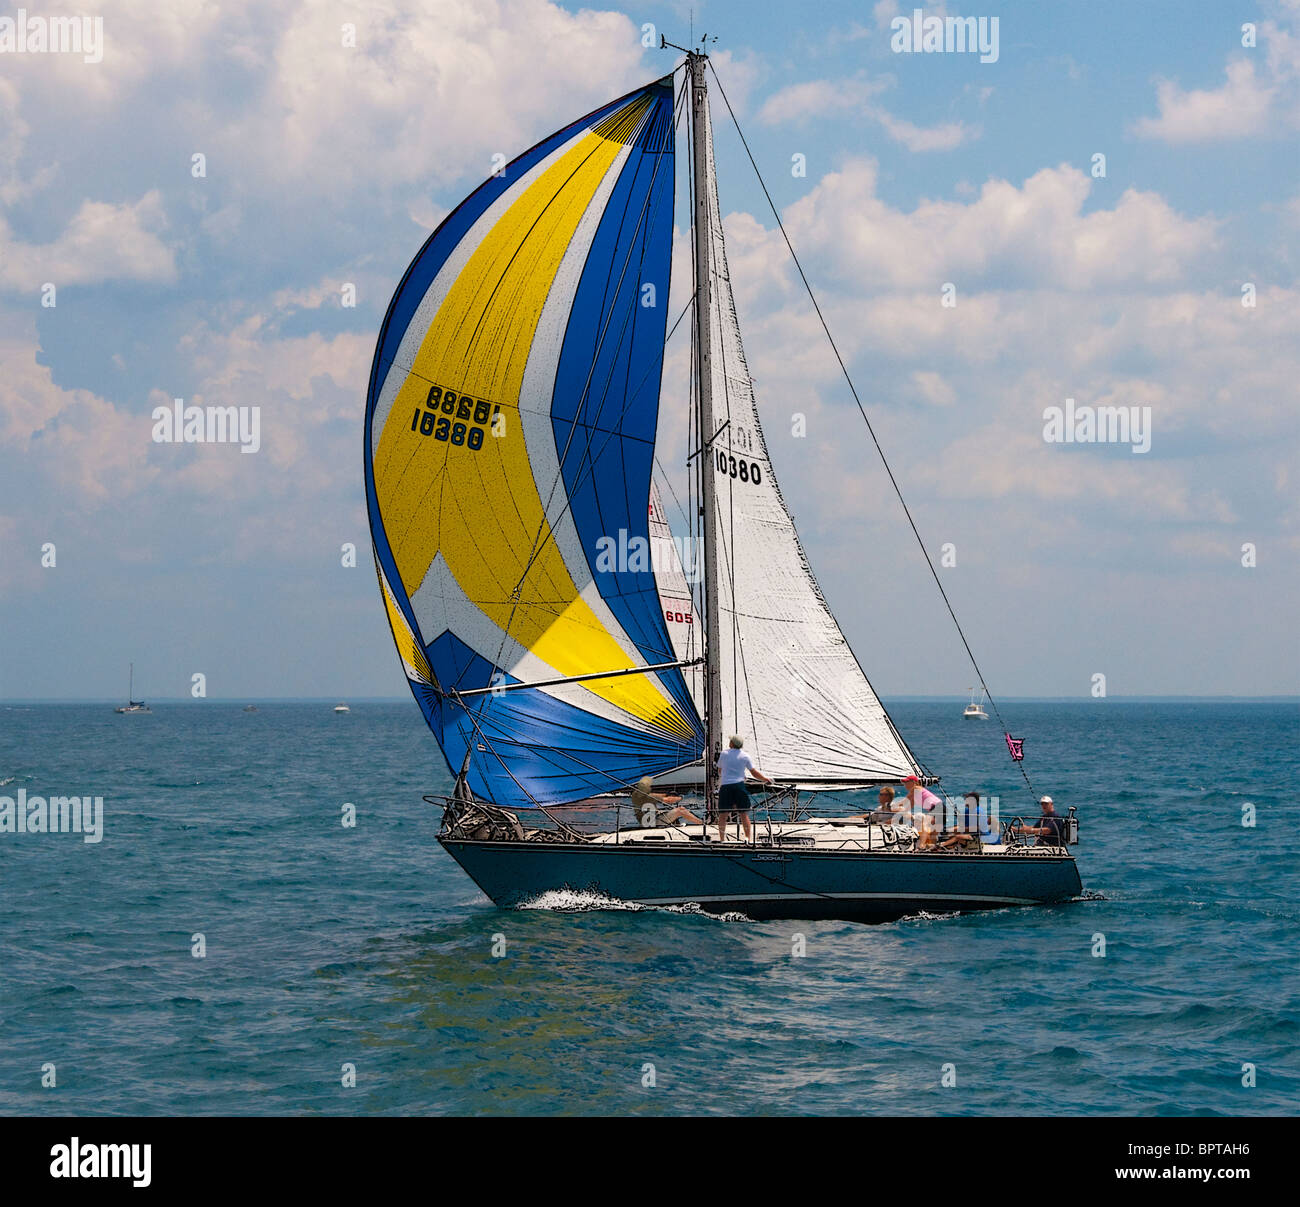 Sailboat races from Port Huron to St. Ingace. - Stock Image